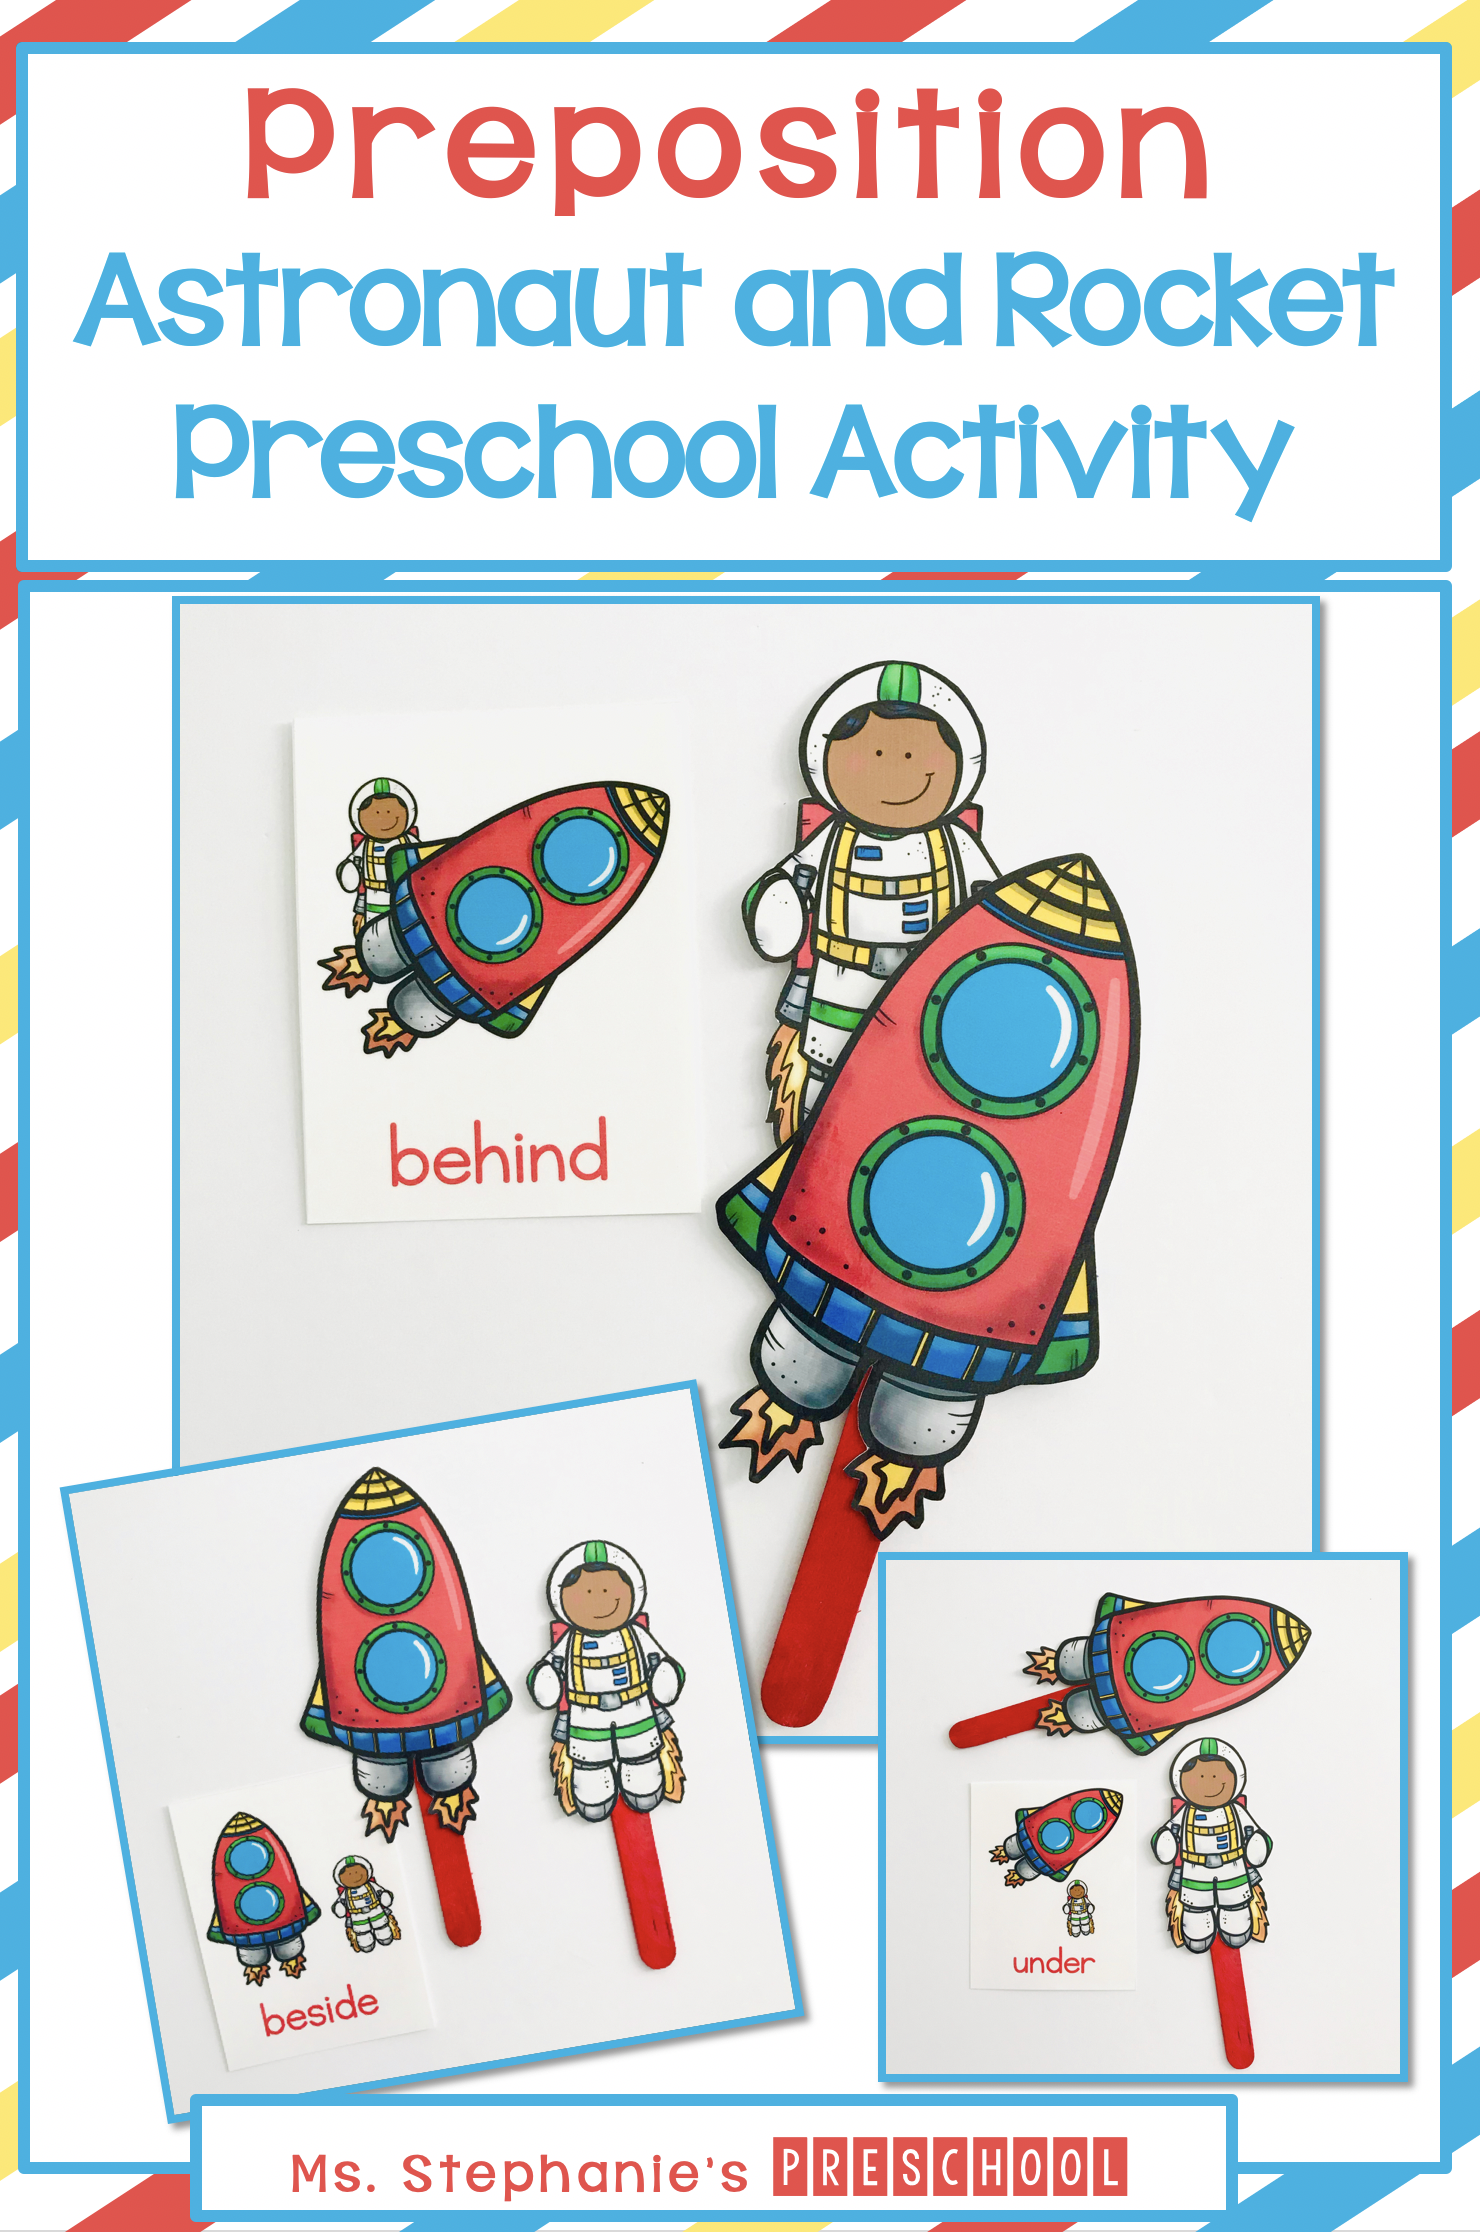 Astronaut And Rocket Preposition Preschool Activity In